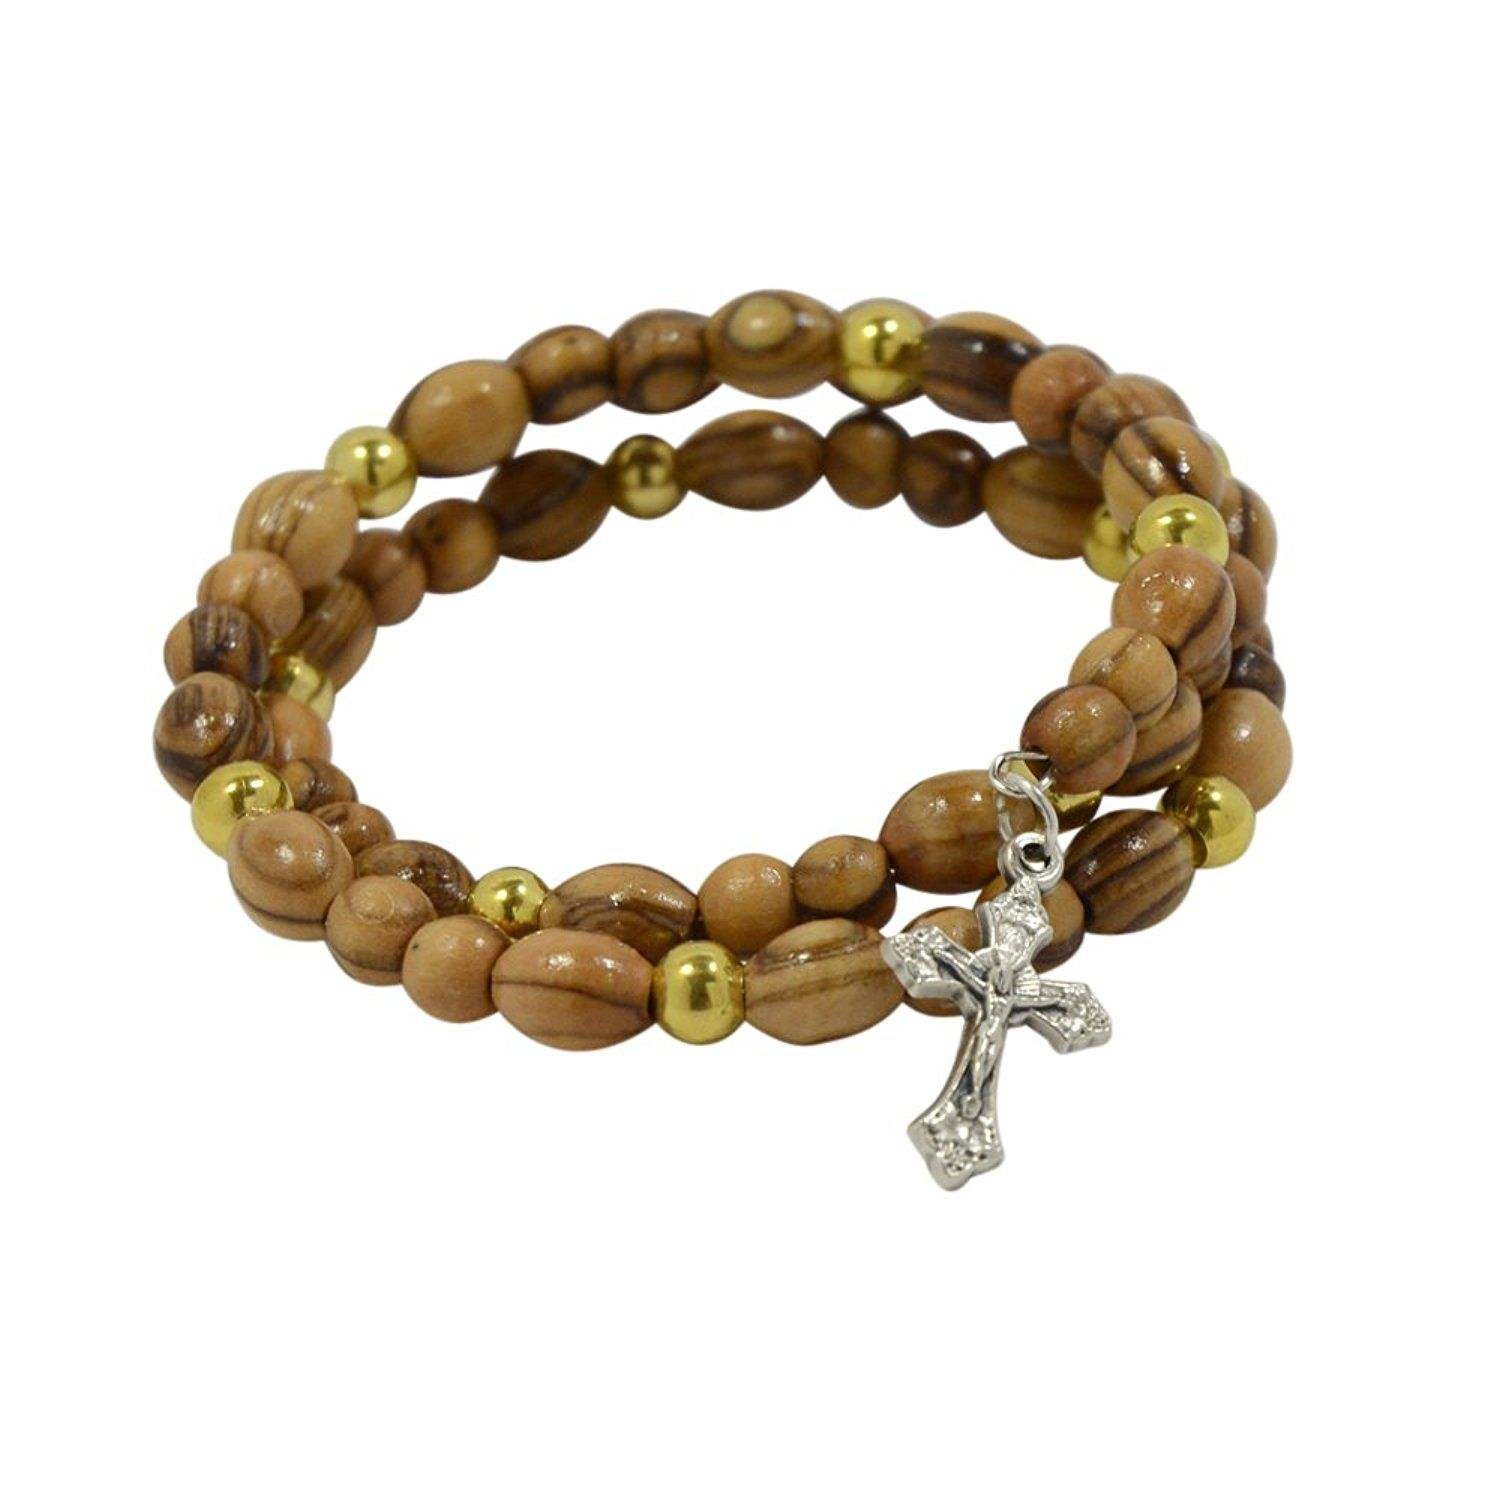 Authentic olive wood rosary beads bracelet with cross and golden